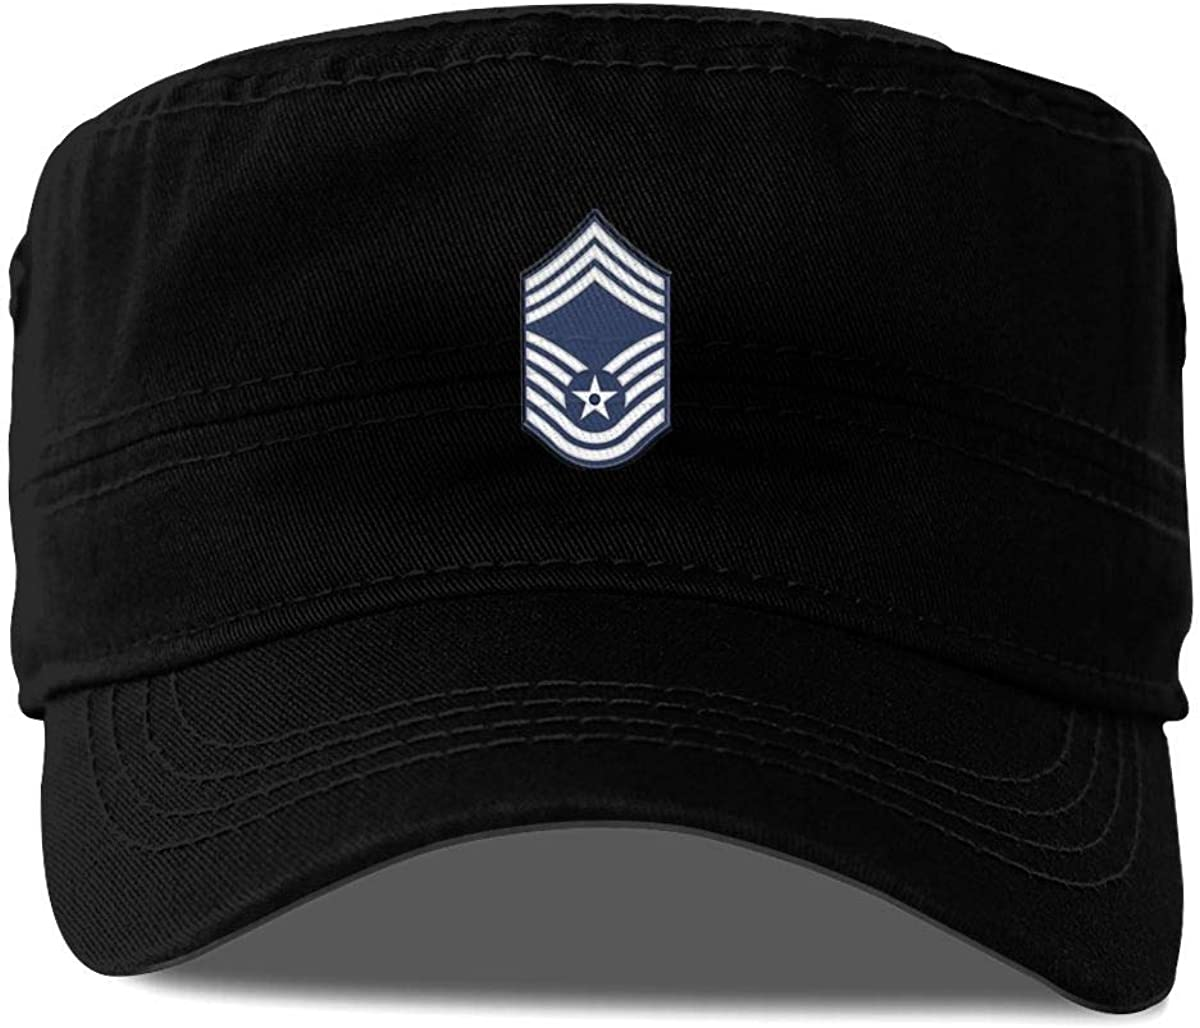 Vinyl Magnet Military Veteran Served Cap Baseball Hat Adjustable Black Magnet US Air Force Chief Master Sergeant No Diamond